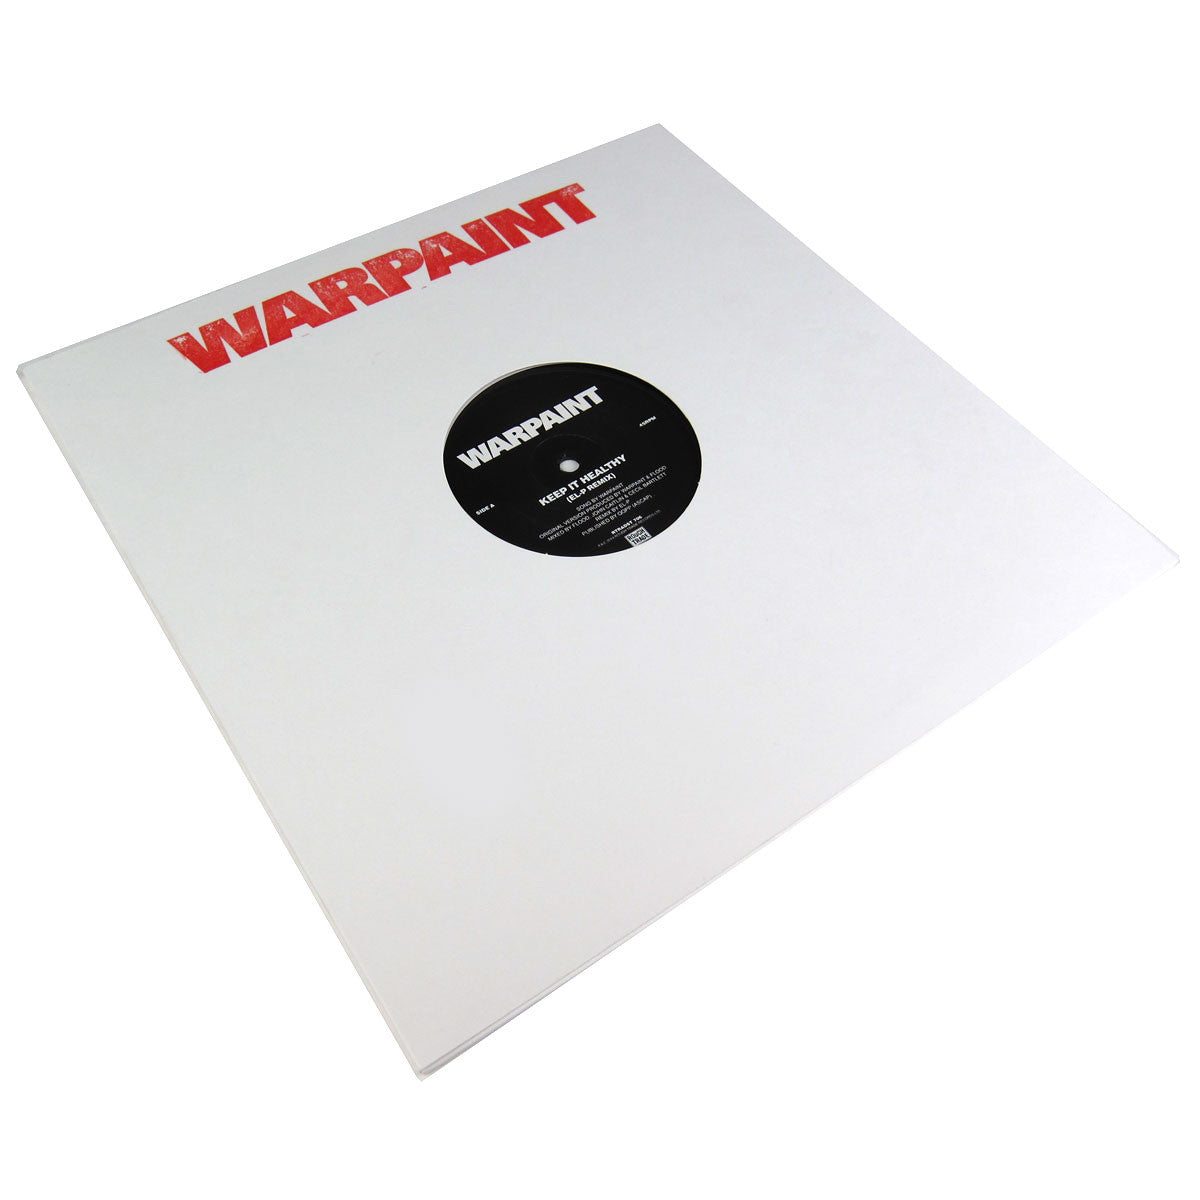 Warpaint: Keep It Healthy / Disco//Very (El-P, Richard Norris) Vinyl 12""